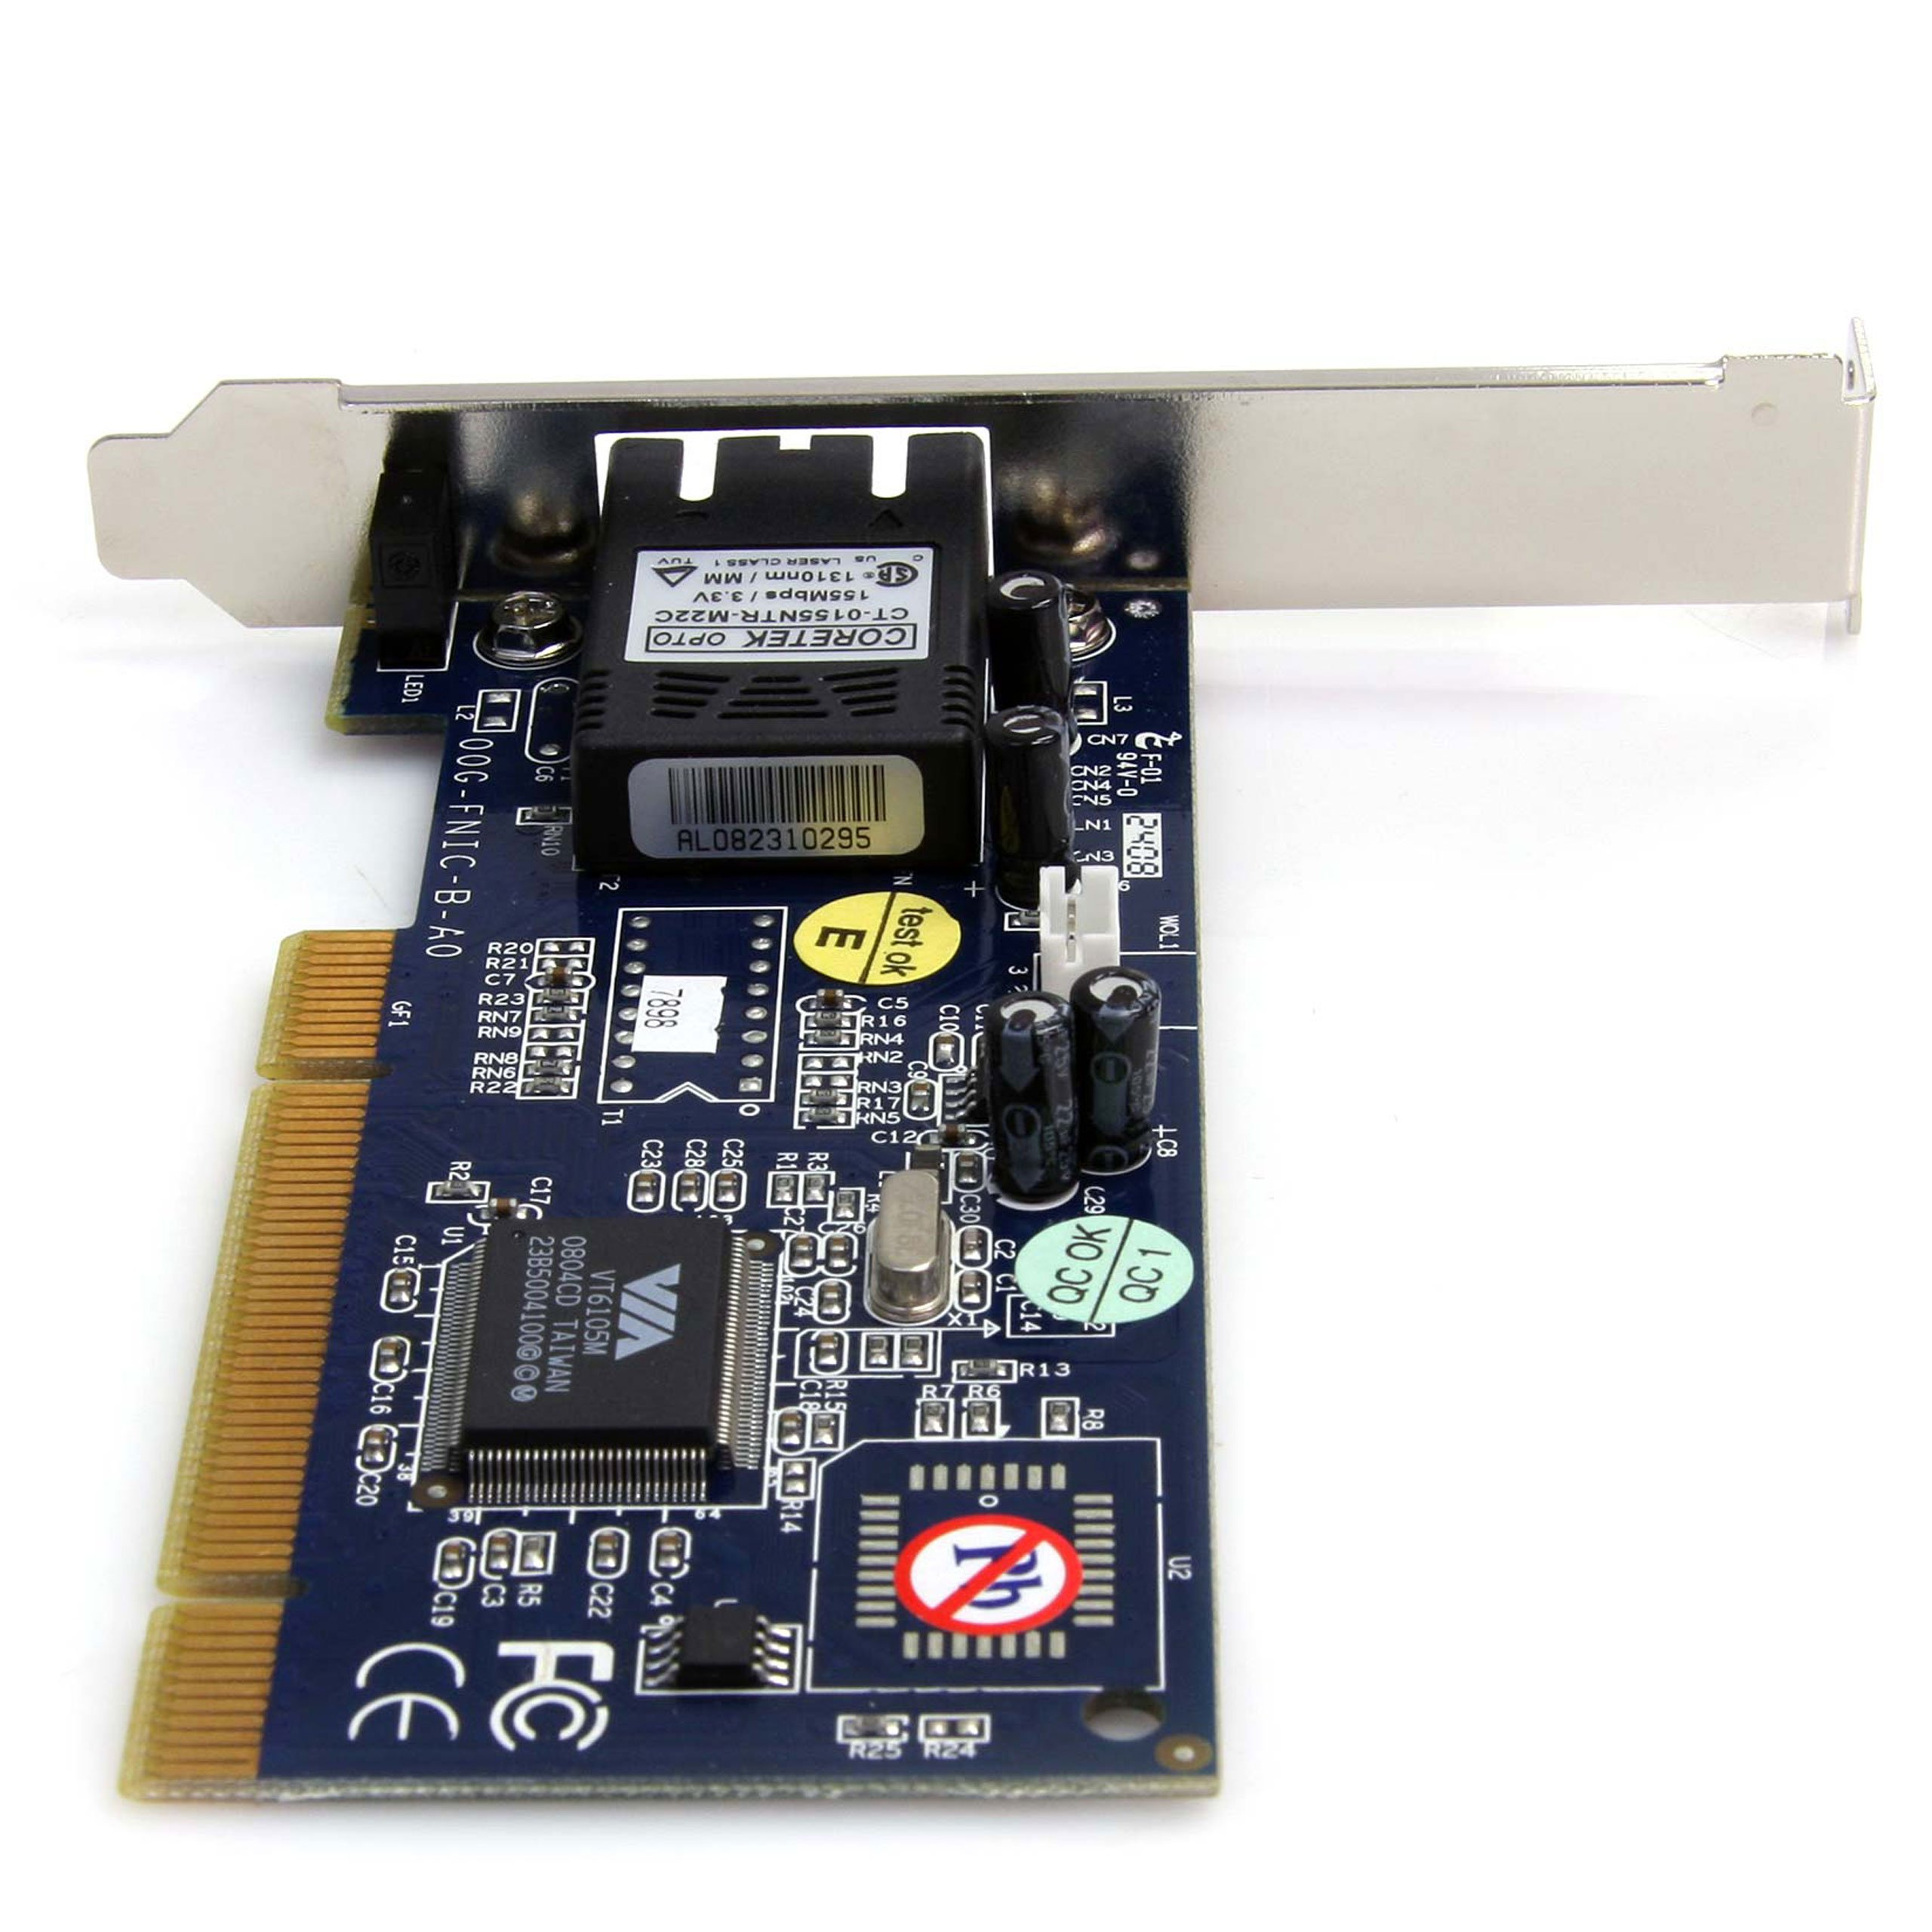 StarTech.com 100Mbps Full/Low Profile Ethernet Multi Mode SC Fiber PCI NIC Card - 2 KM (PCI100MMSC) by StarTech (Image #4)